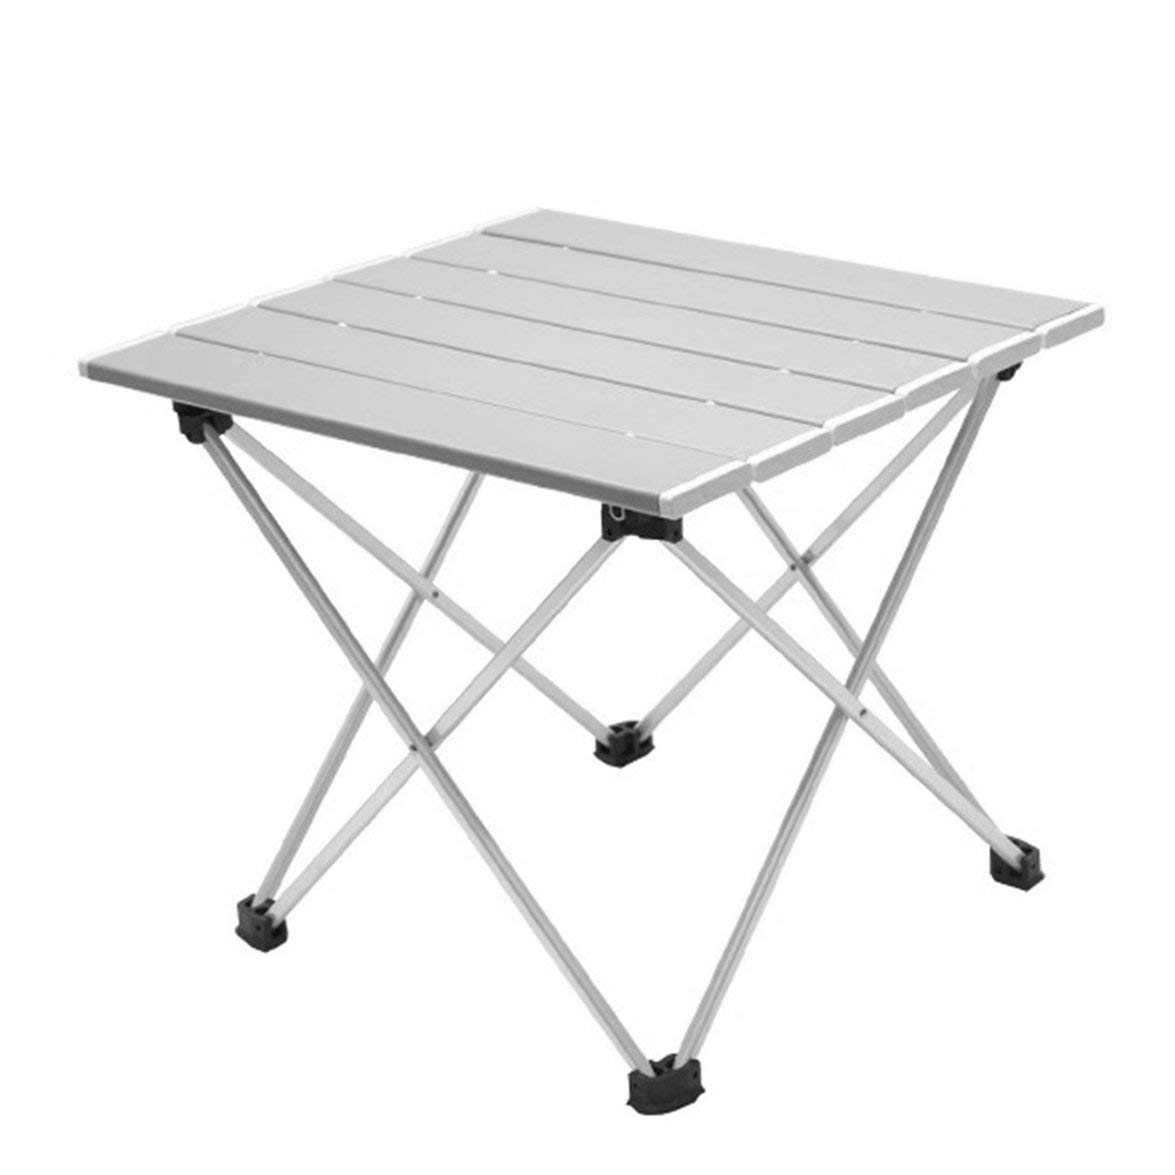 Pandamama Portable Folding Aluminum Roll Up Table Lightweight Outdoor Camping Picnic Simple Furniture Camping Table Tea Table by Pandamama